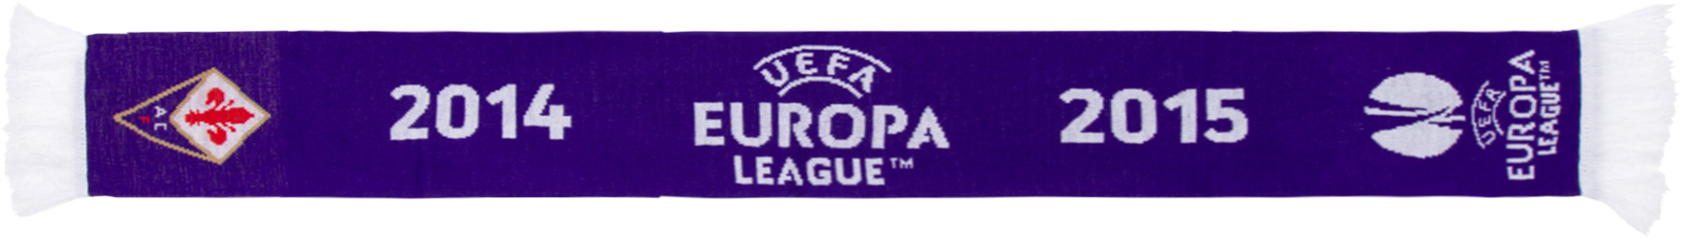 ACF-Fiorentina-UEFA-Europa-League-FINAL-2